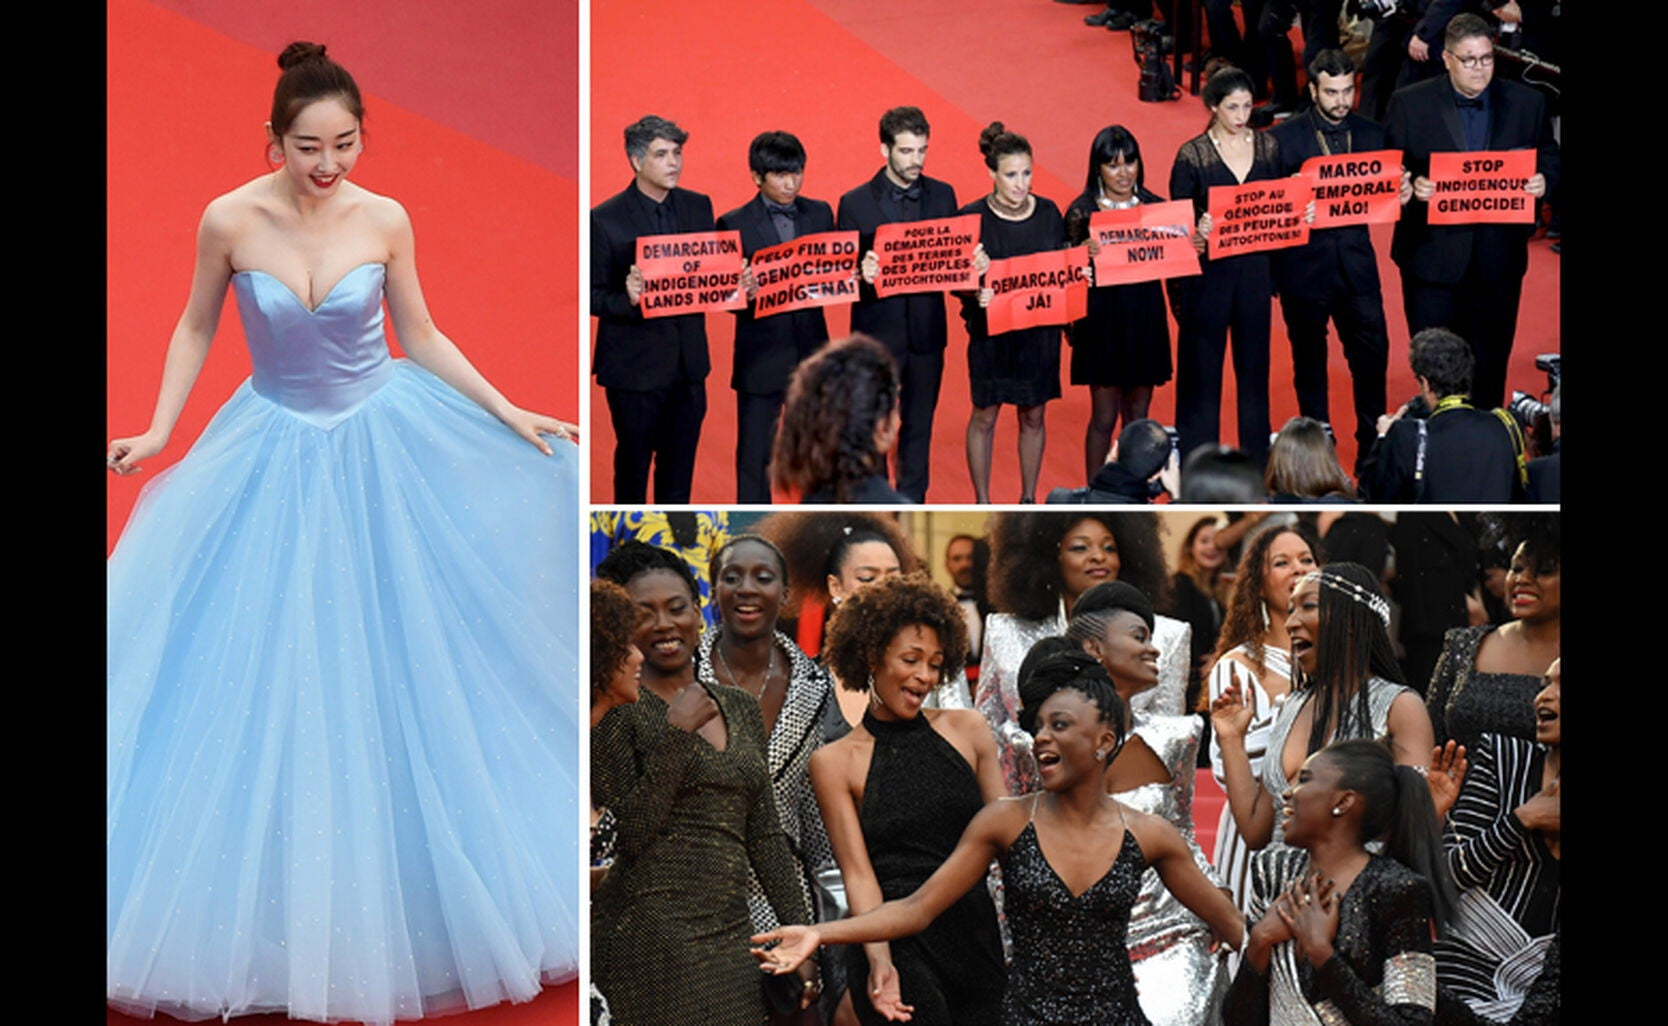 Jiang Mengiie, Protesters and authors at Cannes 2018